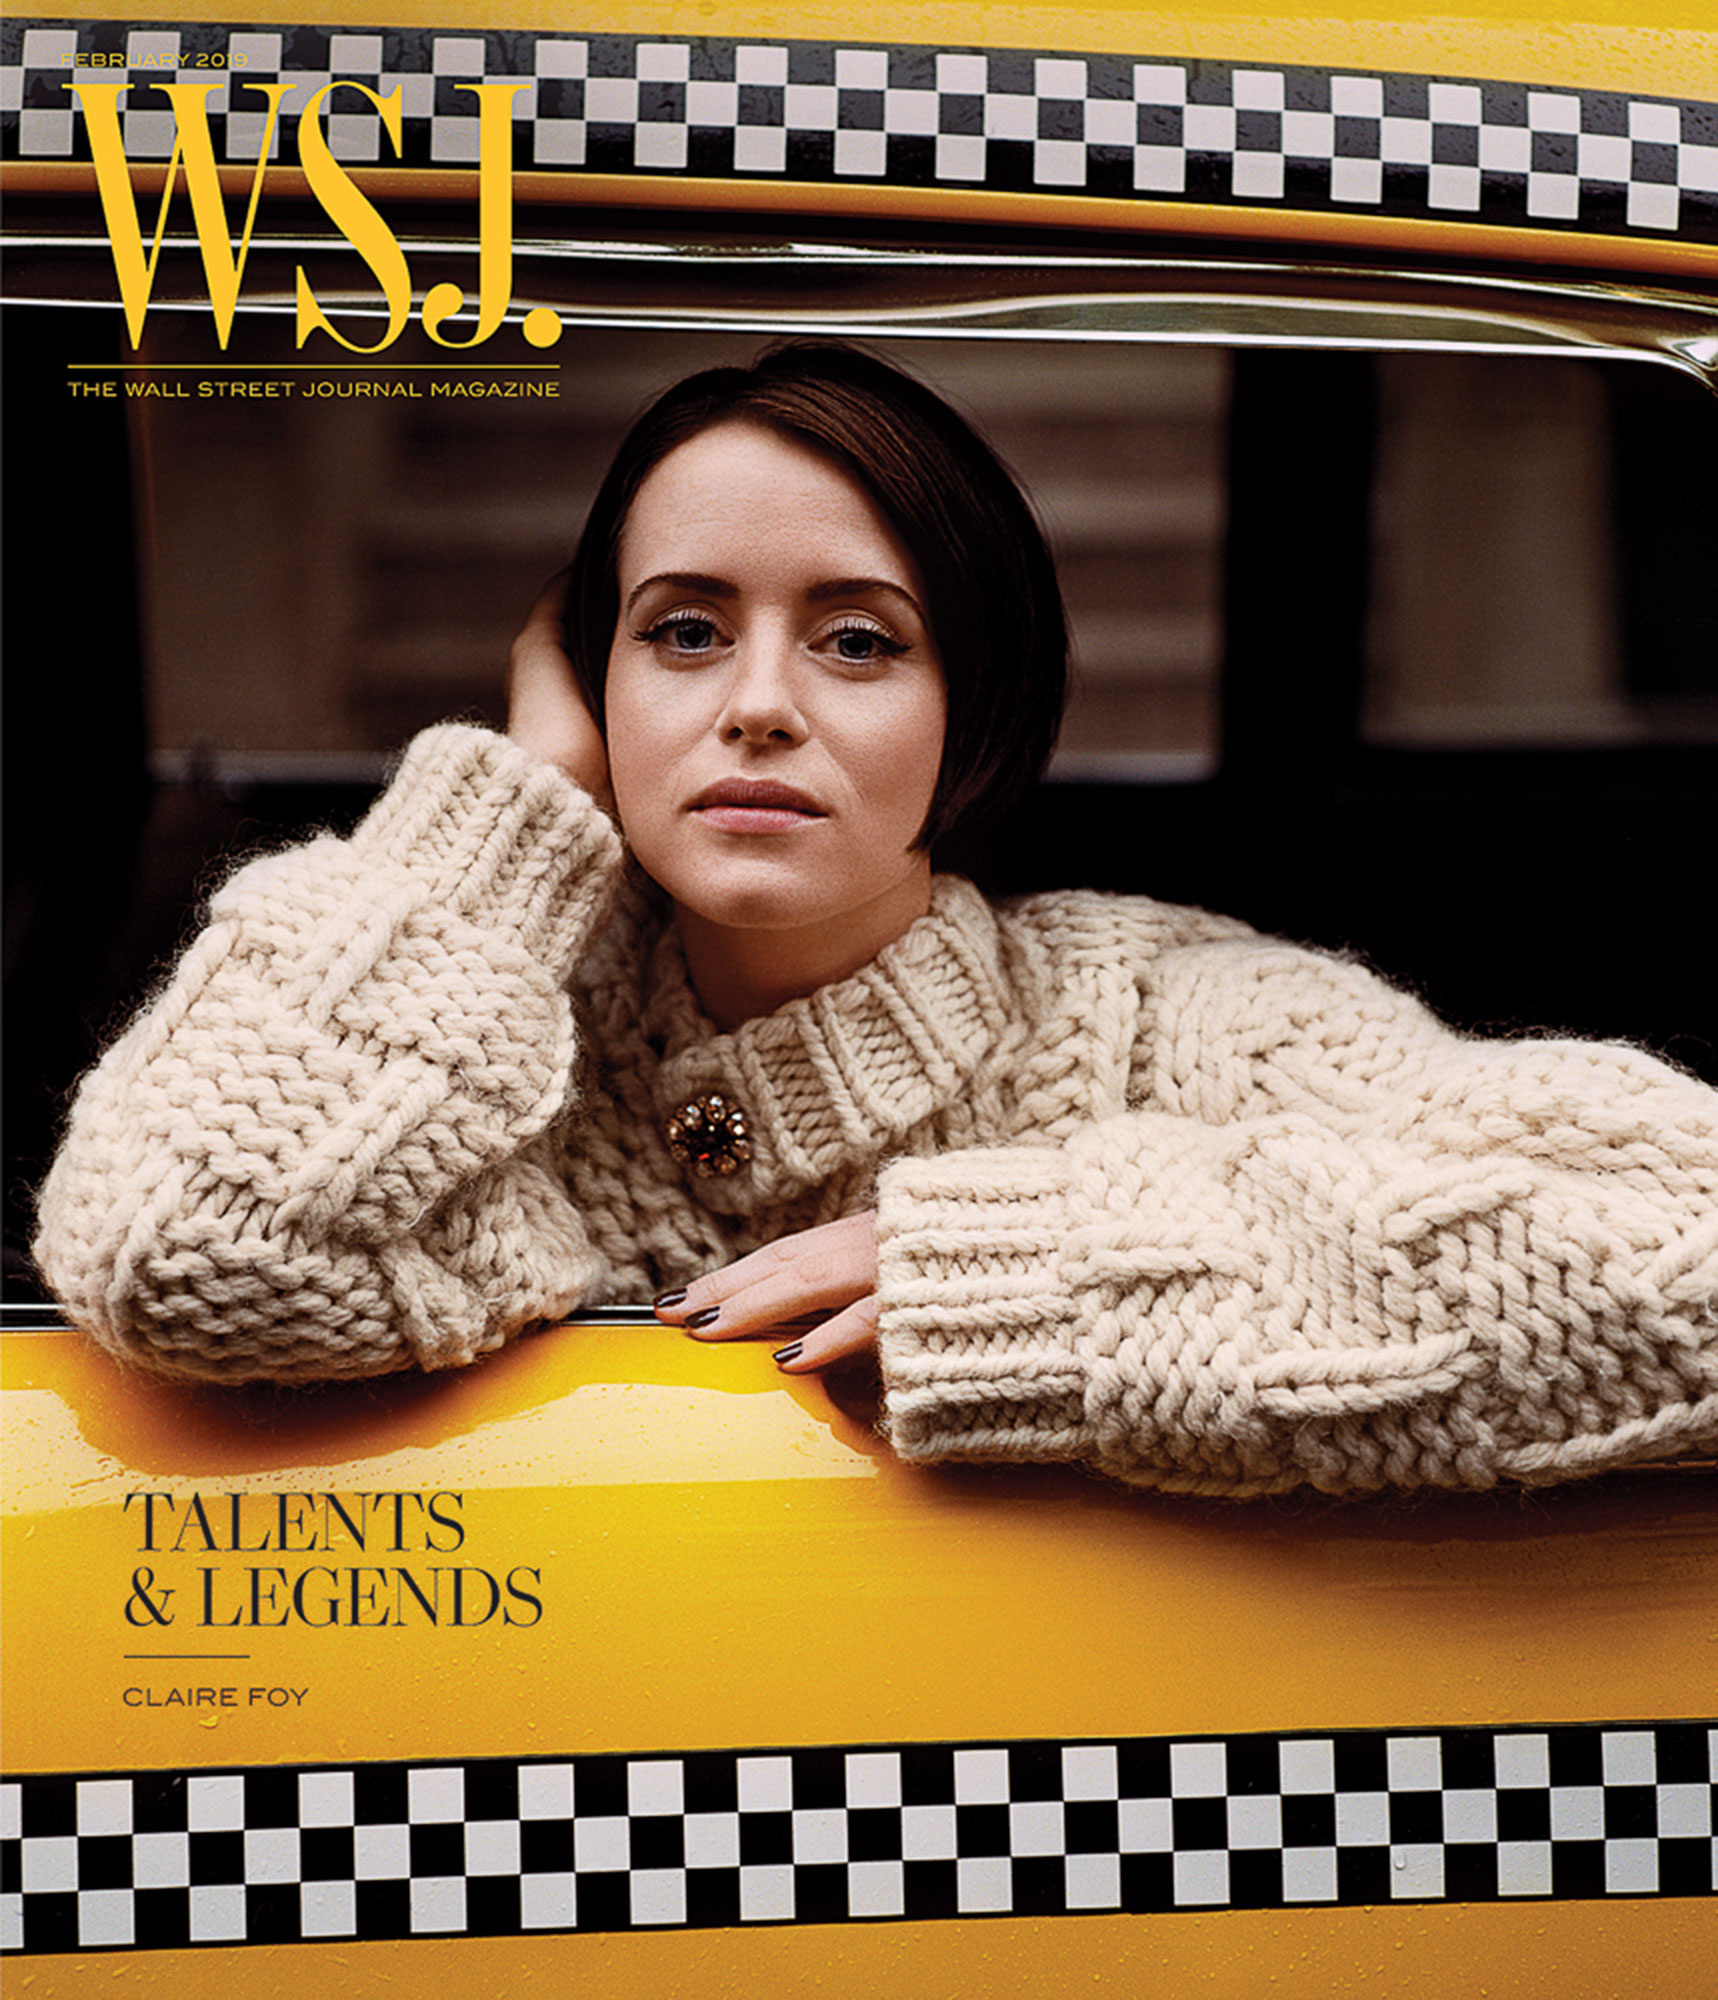 claire-foy-3